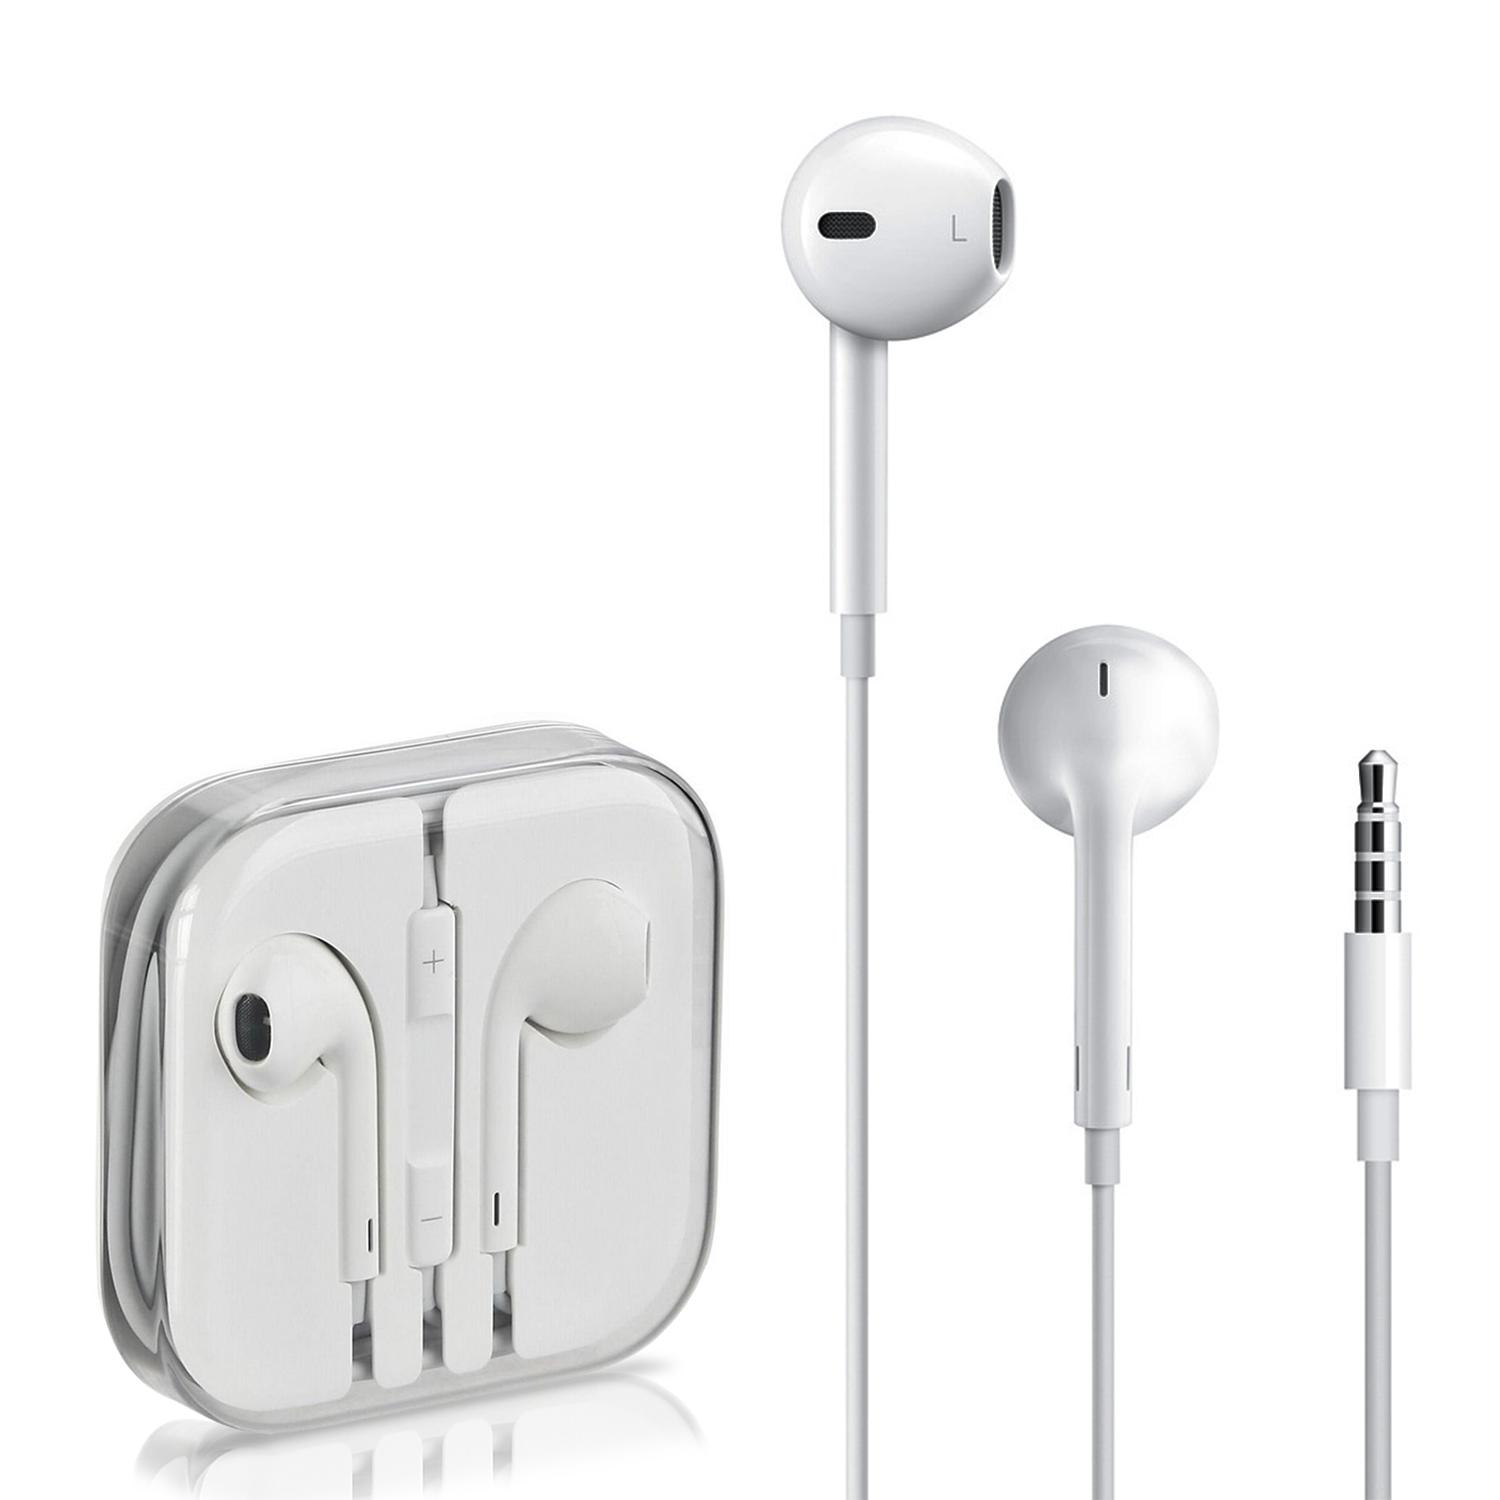 hight resolution of original apple earpods with 3 5 mm headphone plug handsfree for iphone 6 6s 6